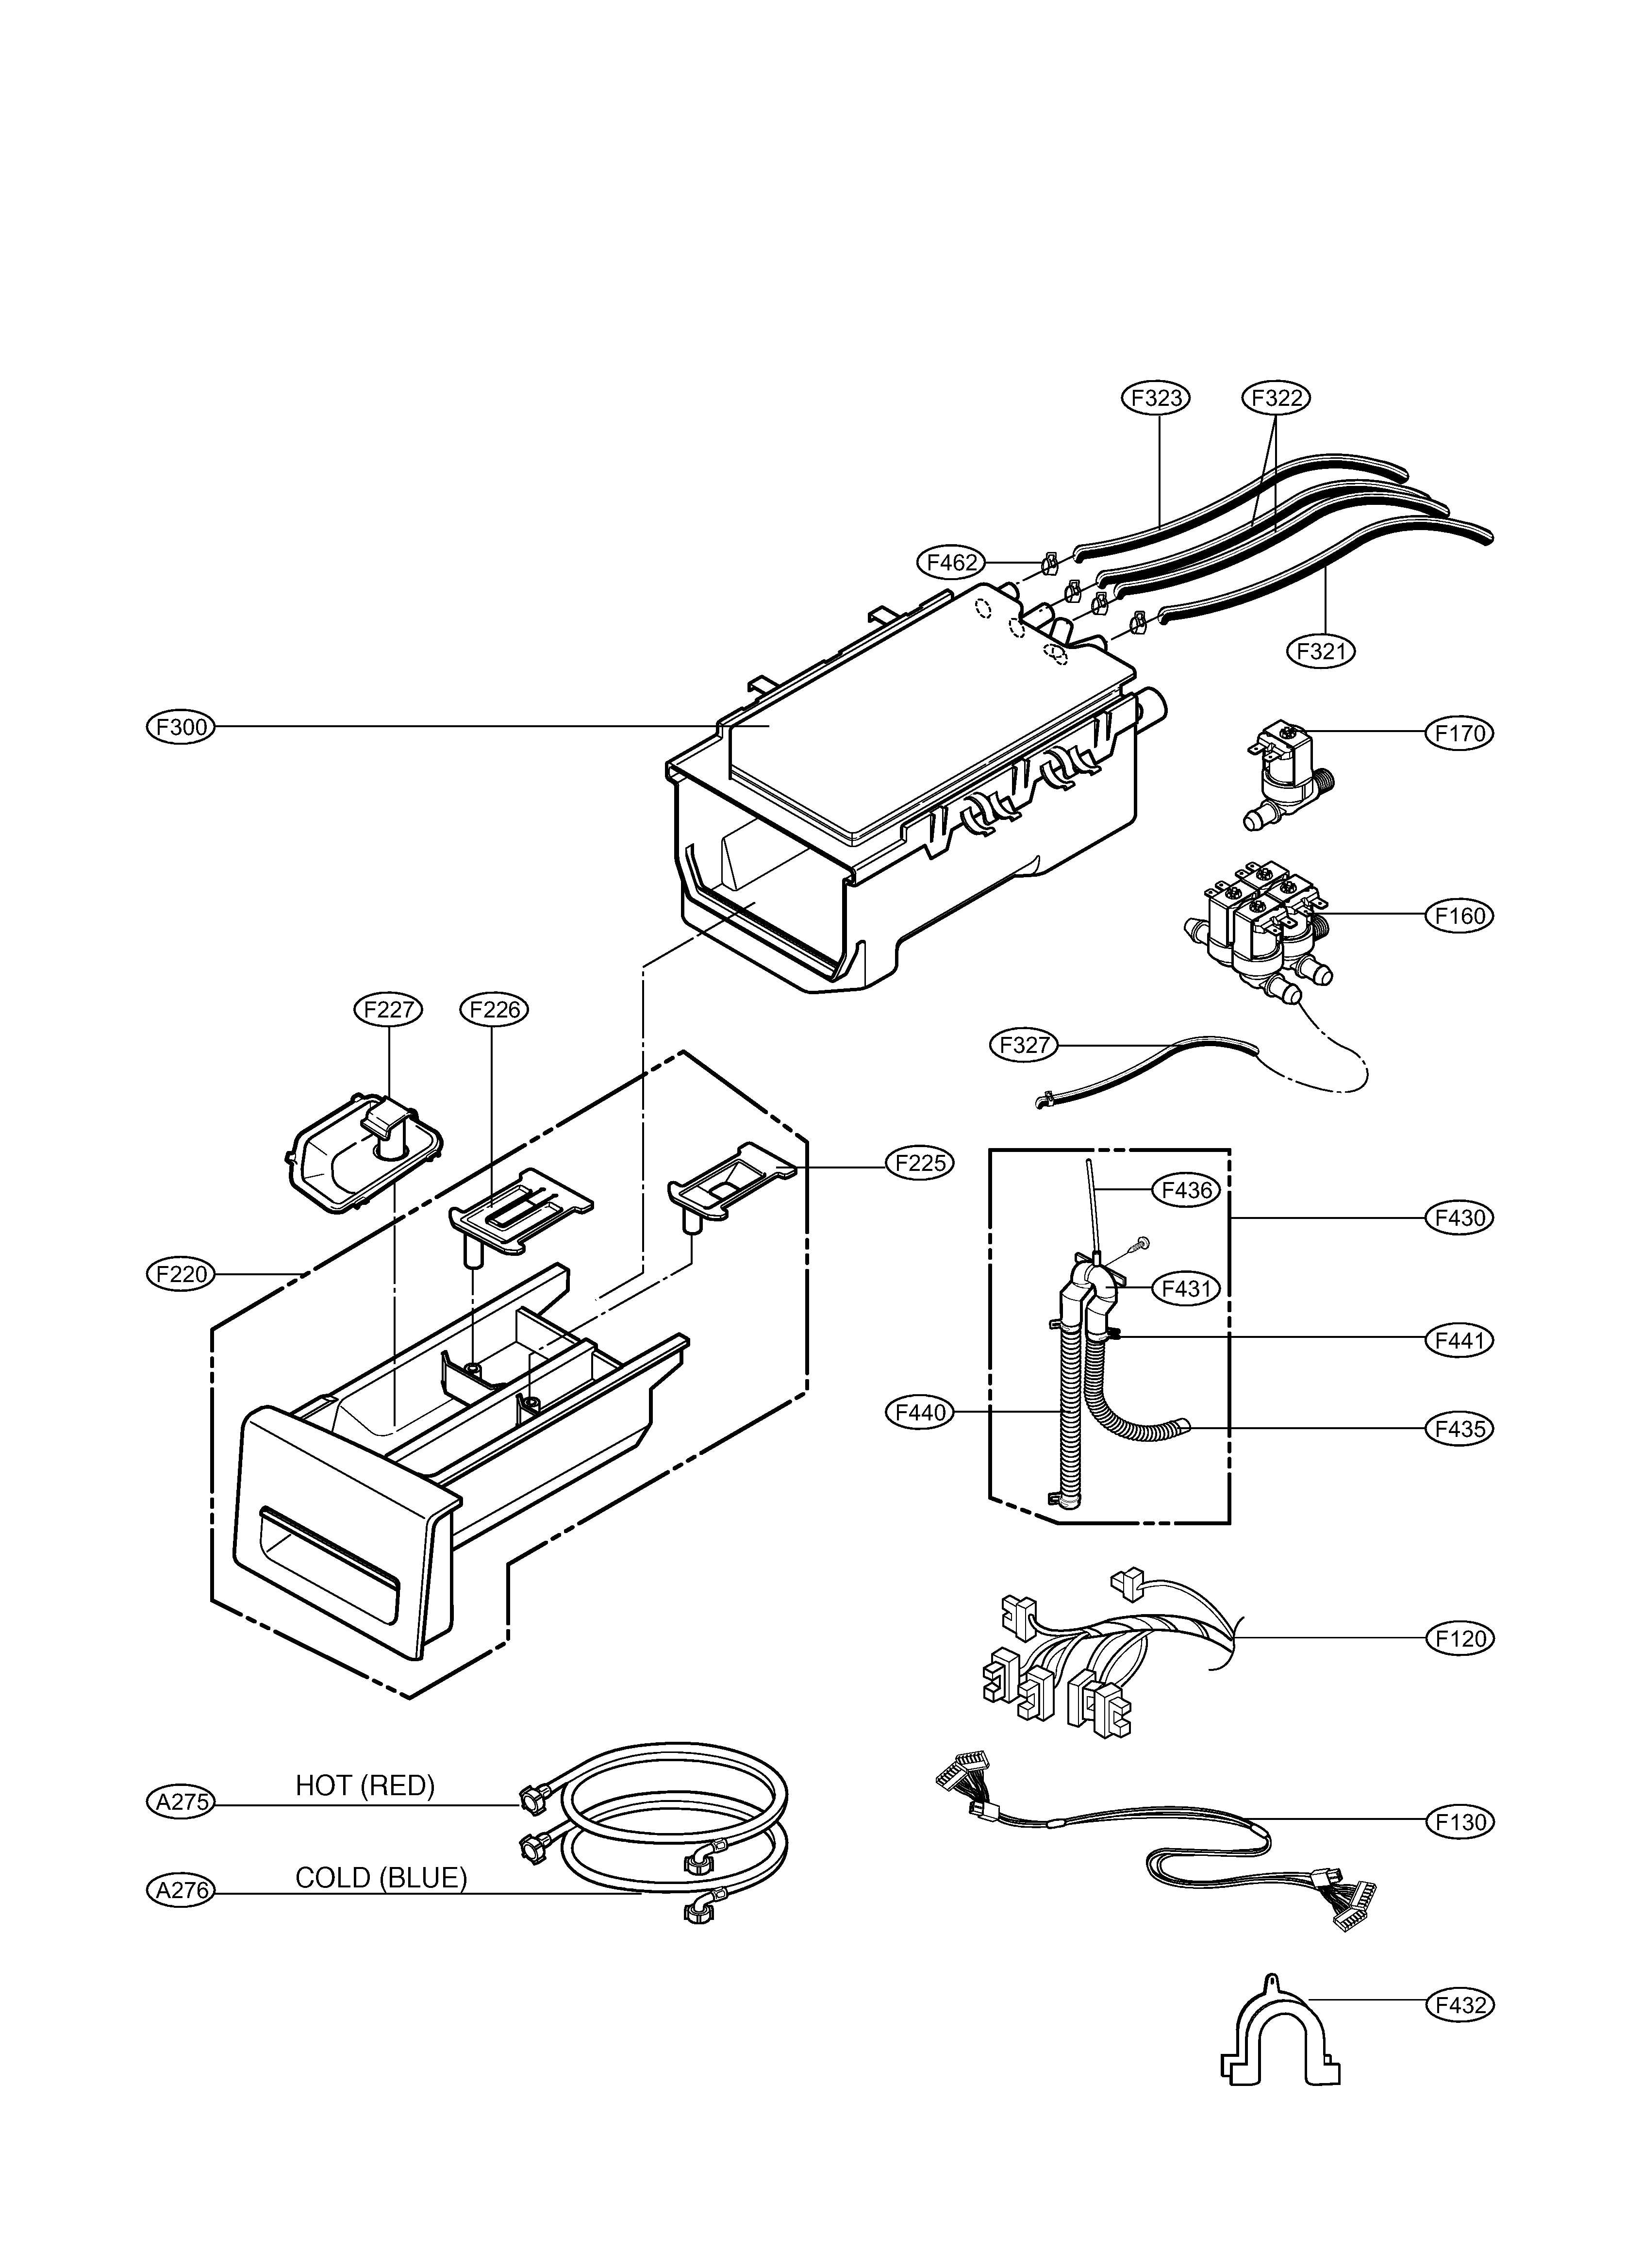 lg tromm washer parts diagram lg image wiring diagram hi my lg combo washer dryer is not drying before you say on lg tromm washer